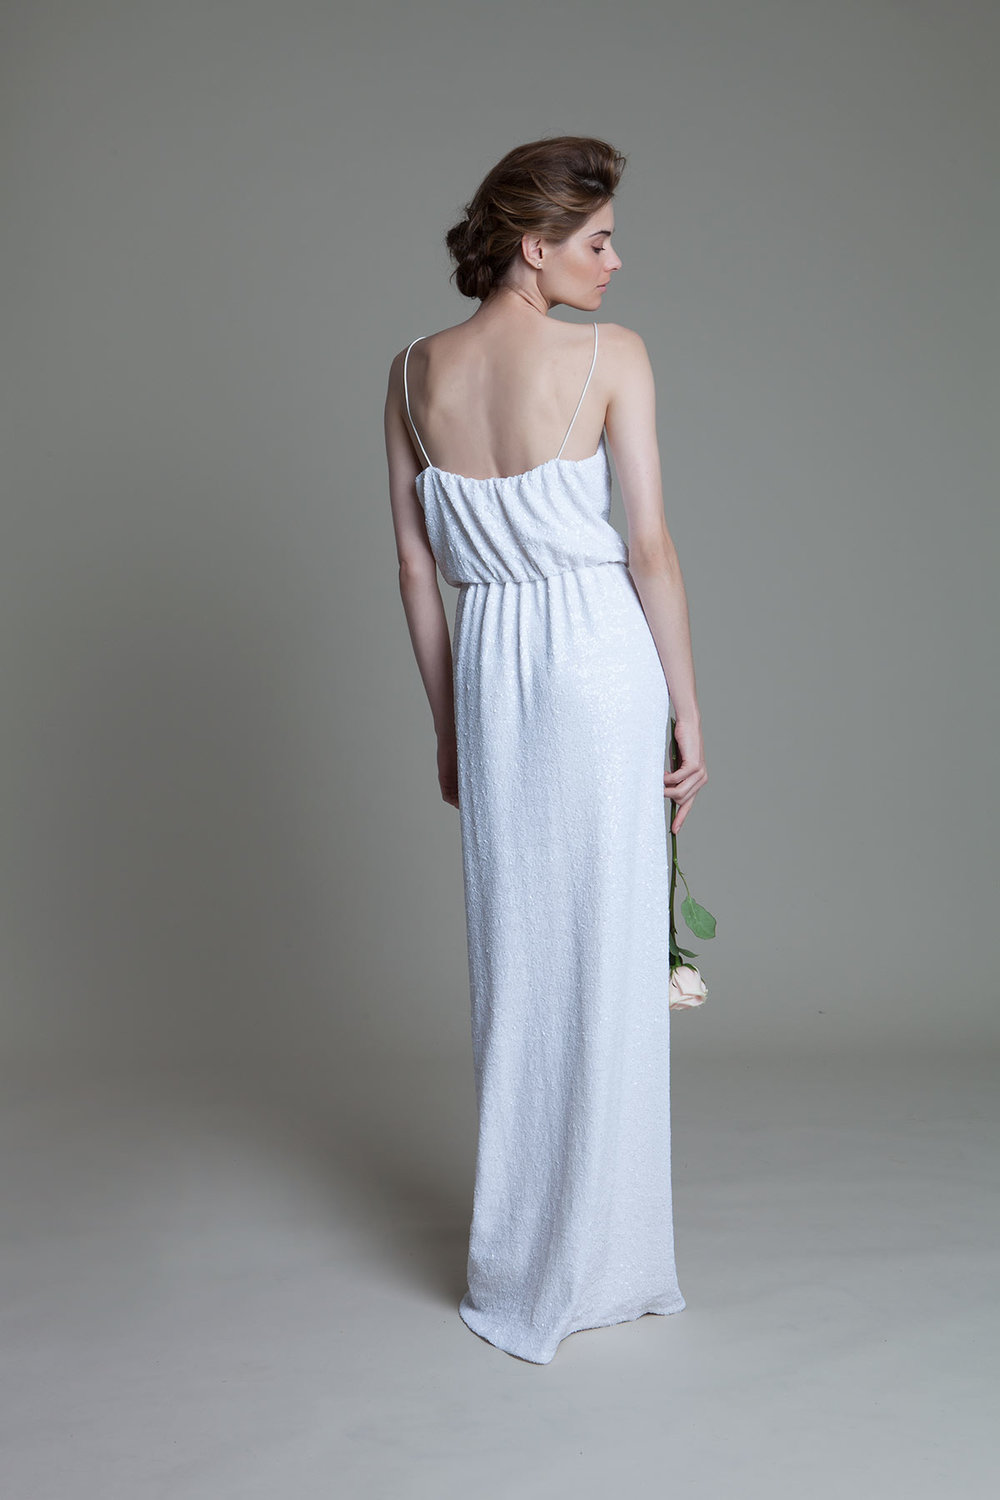 Back View of the Celeste Sequinned Dress with High Slit Wedding Dress by Halfpenny London